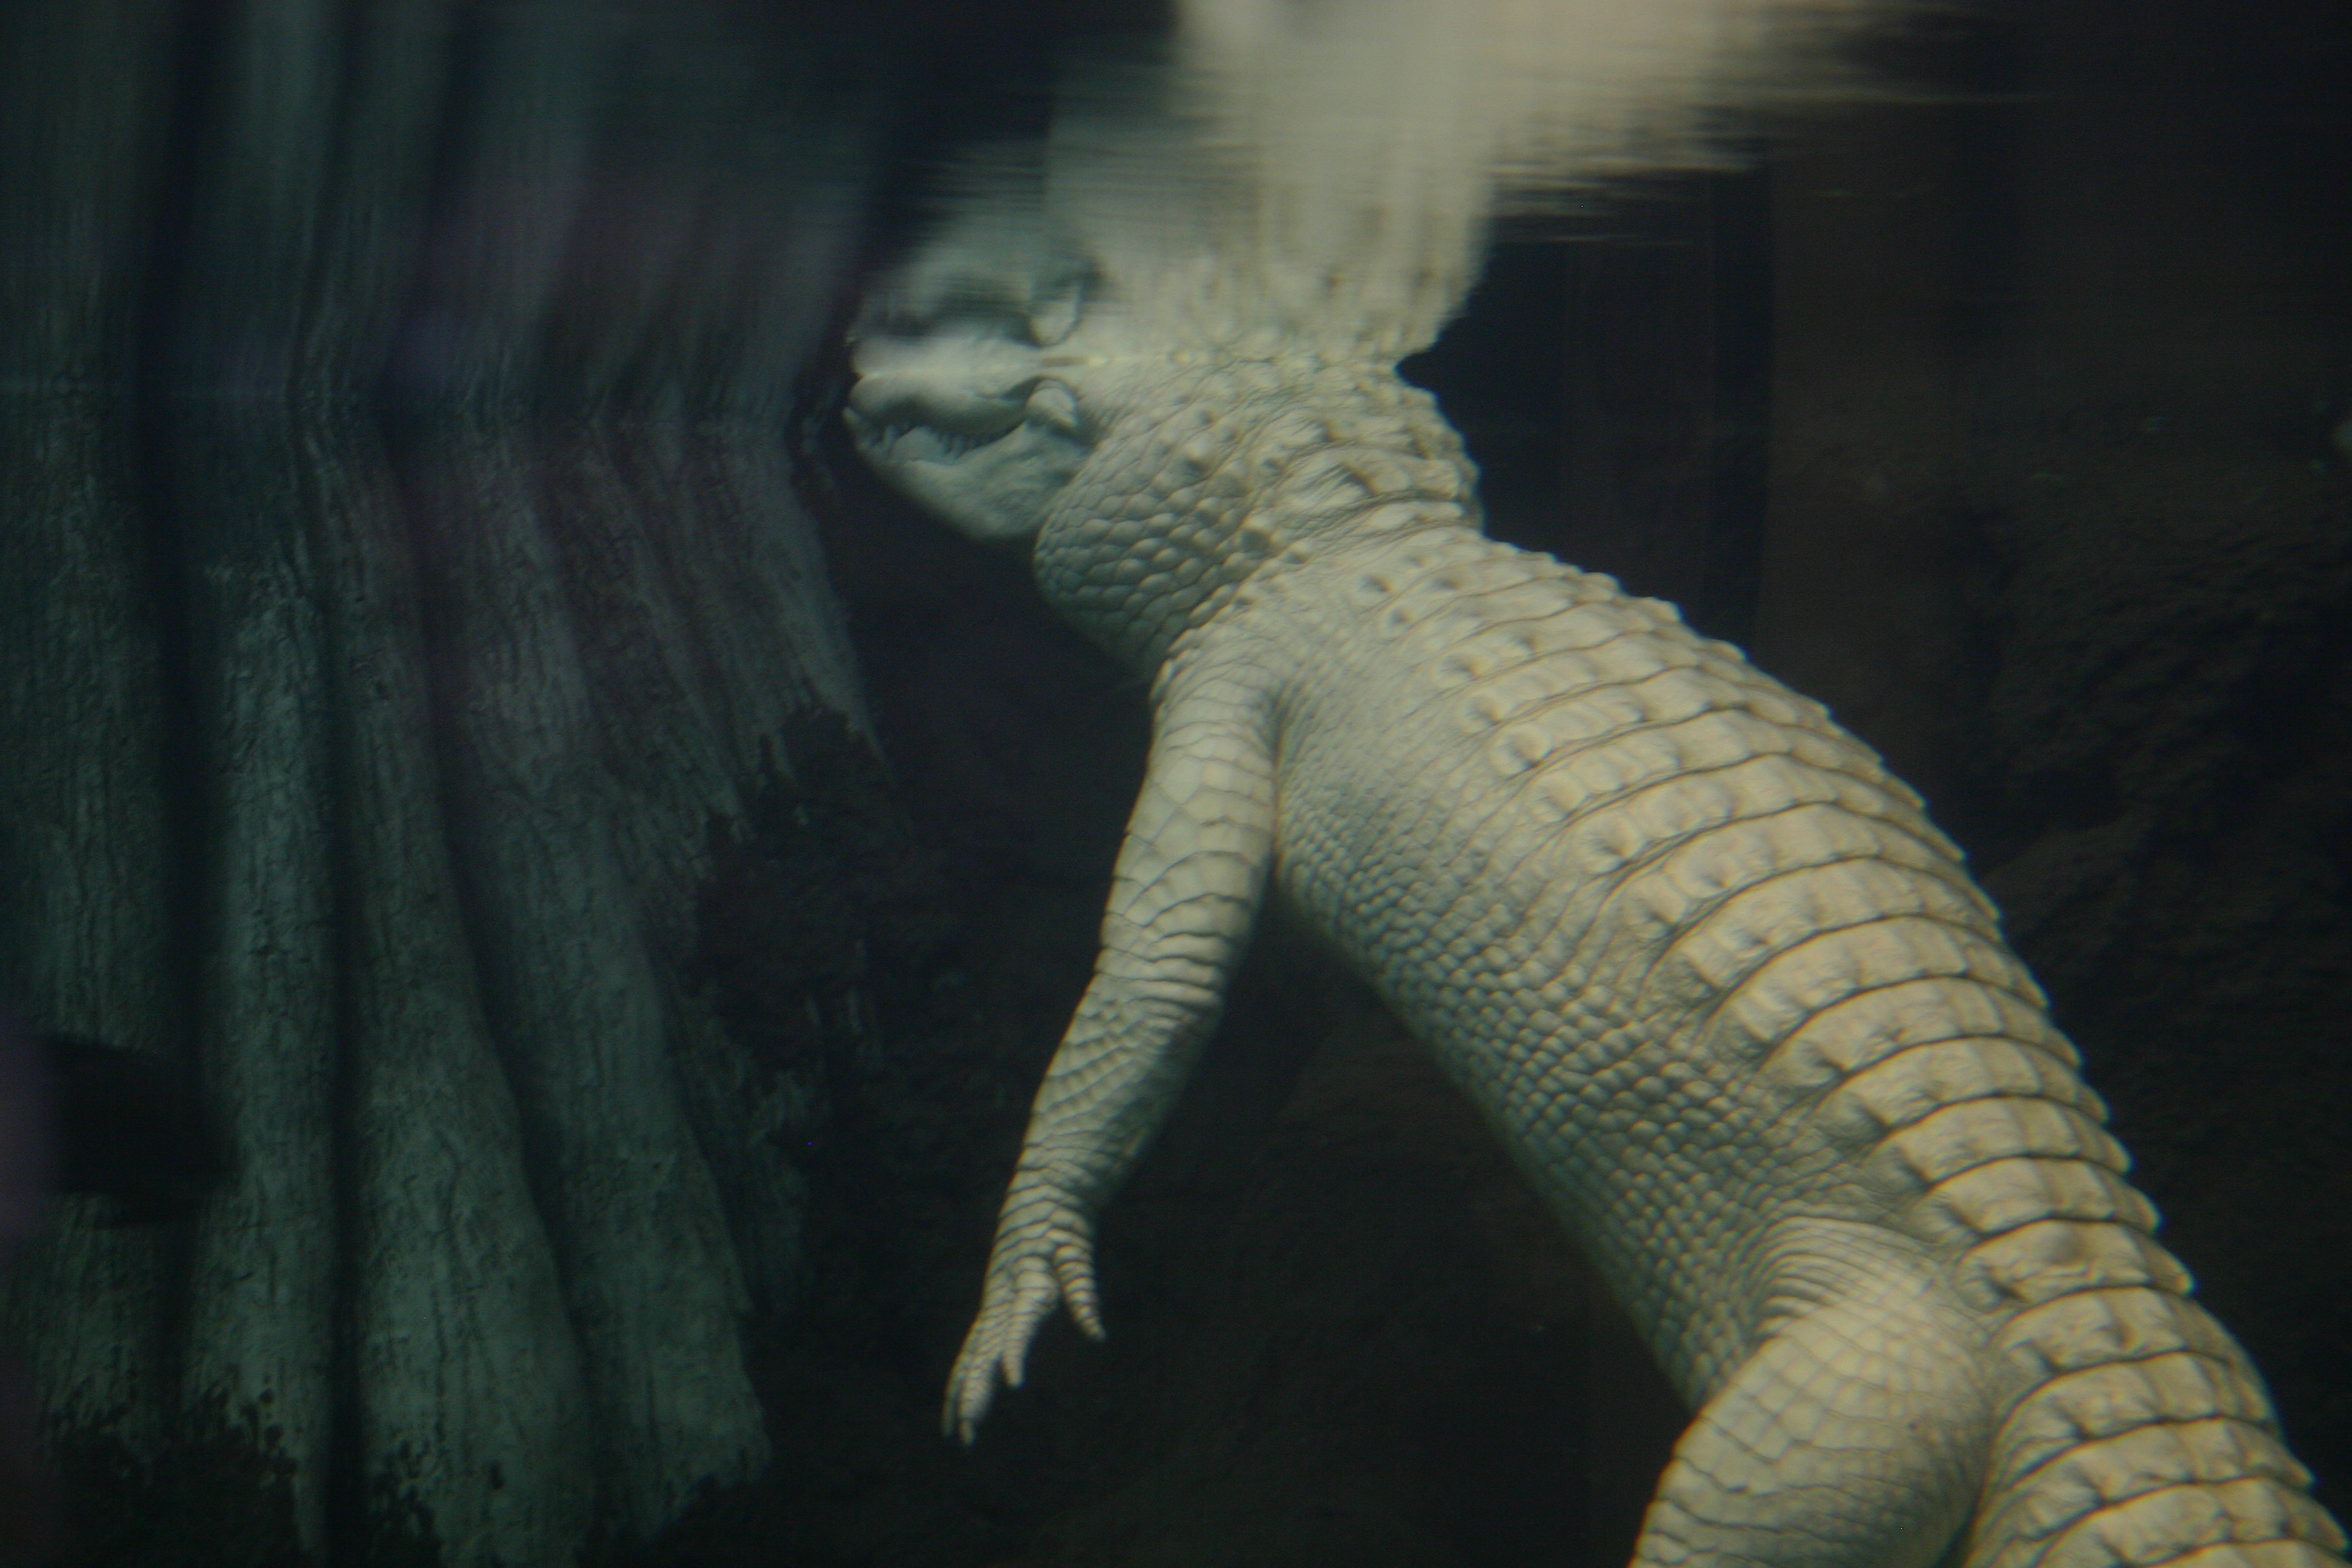 Claude the albino alligator, submerged under water.